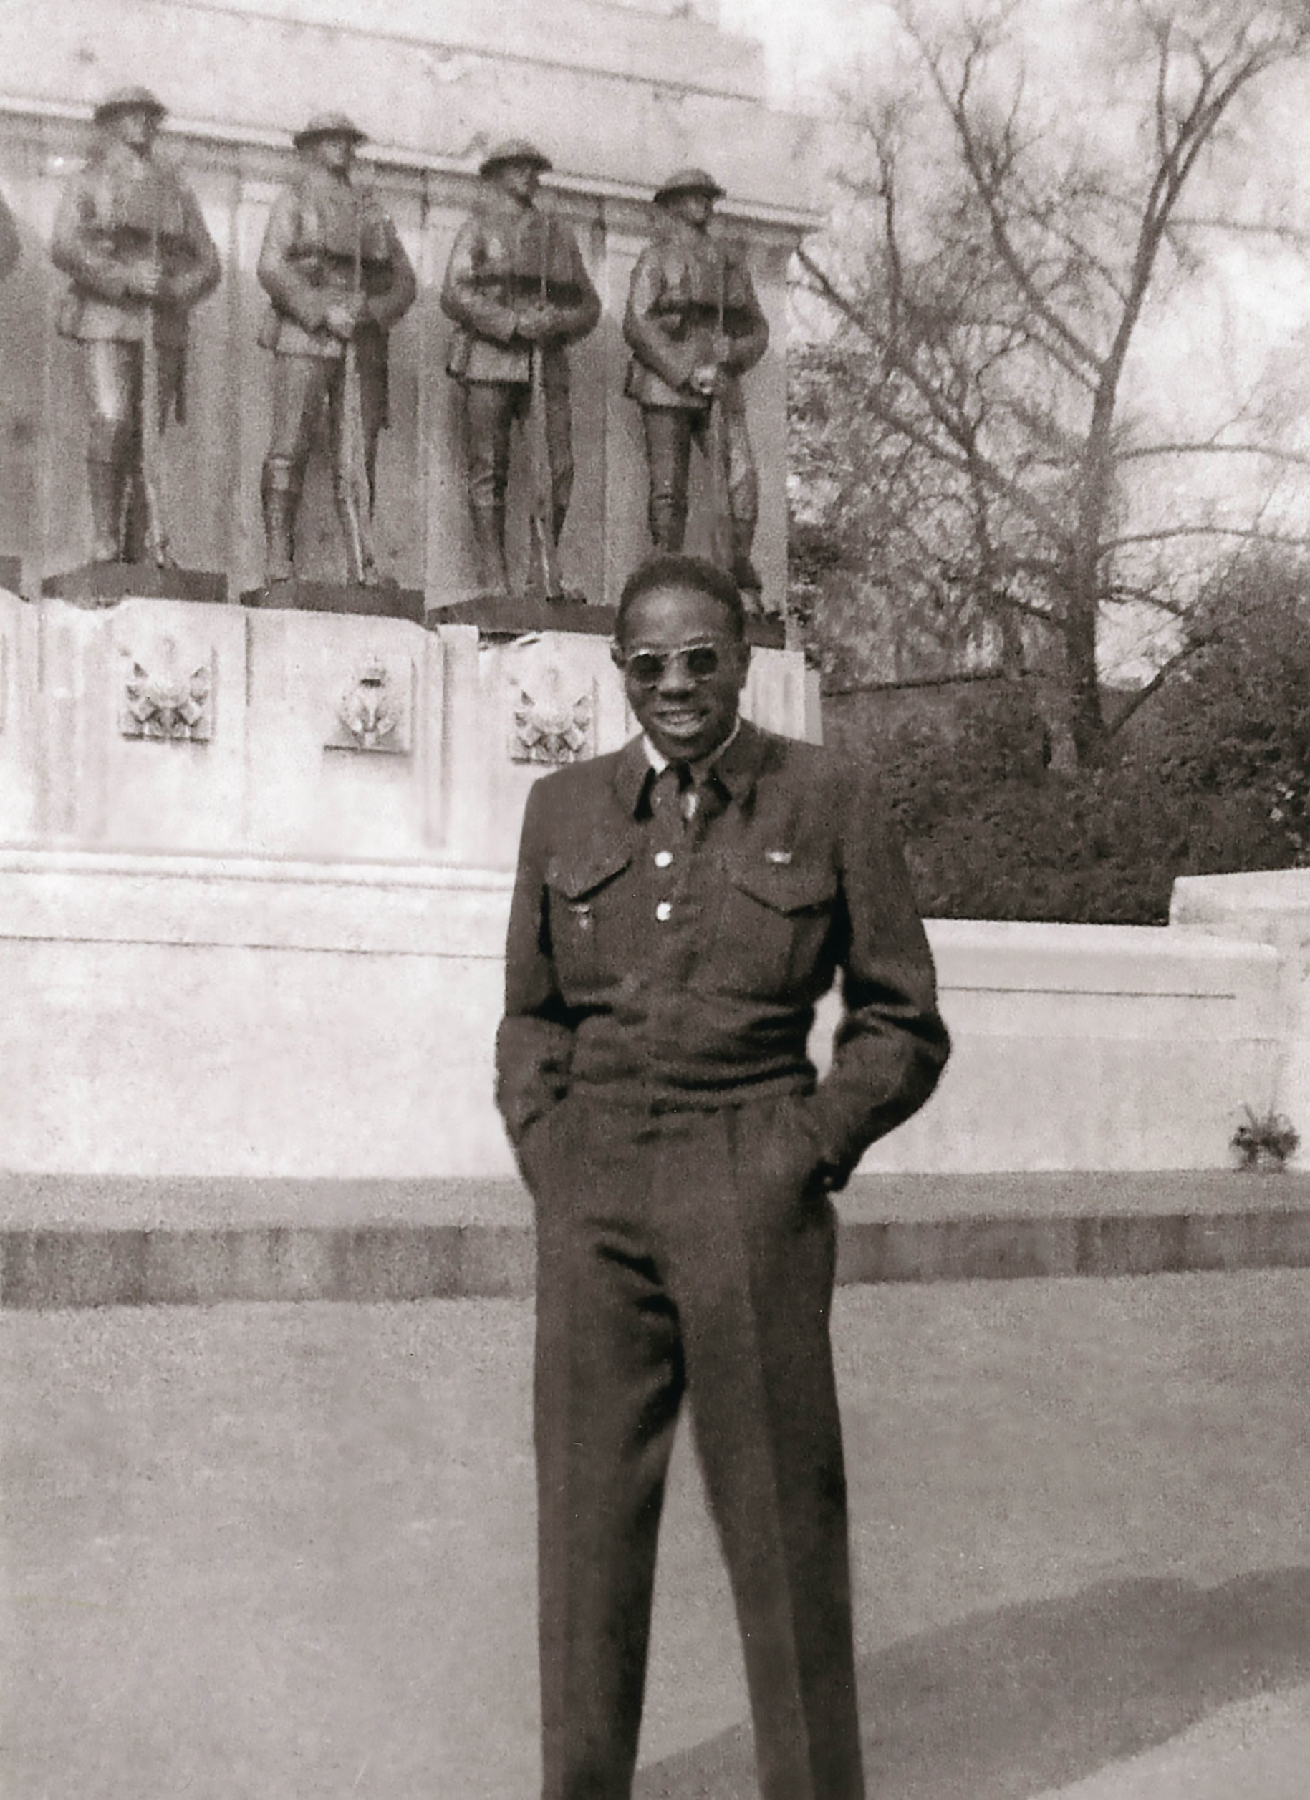 In a black-and-white photograph, a Black man wearing a uniform stands with his hands in his pockets in front of a large memorial displaying statues of men in uniforms.